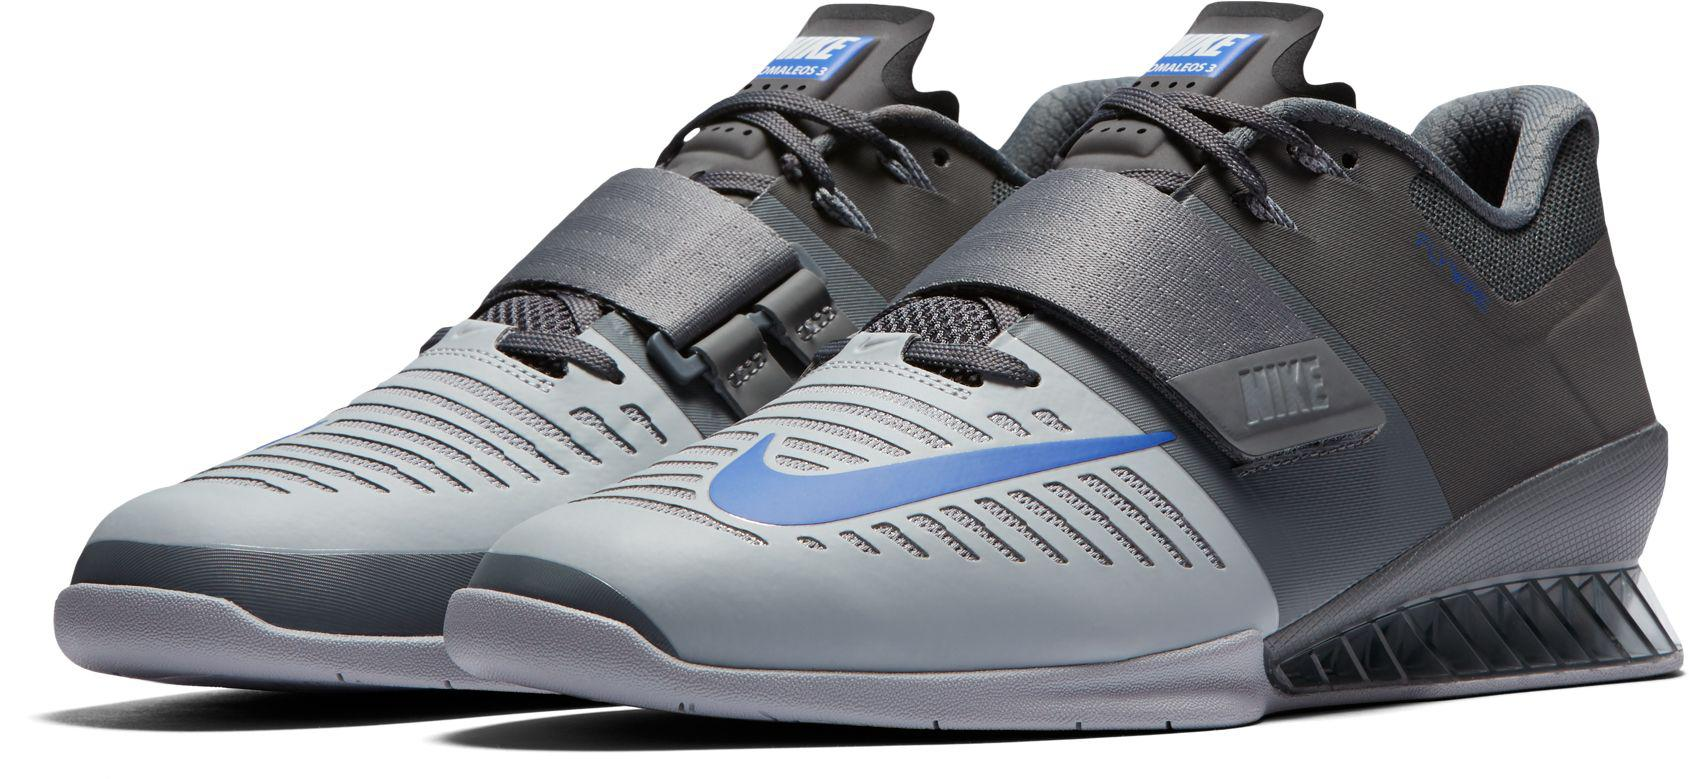 84c4bb74145c Lyst - Nike Romaleos 3 Weightlifting Shoe in Gray for Men